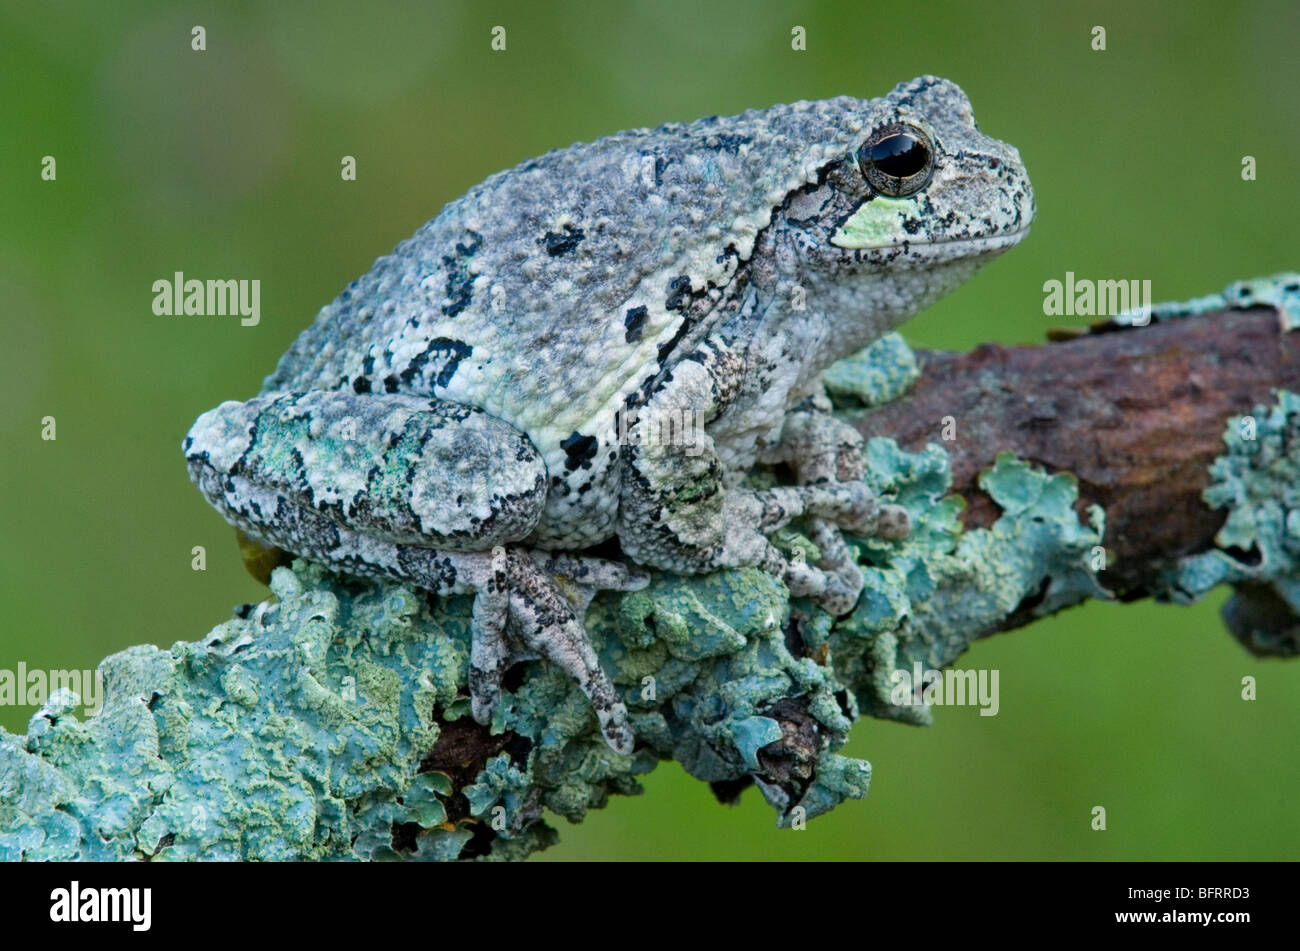 Gray Tree Frog Hyla versicolor camouflaged and blended with lichens Eastern North America, by Skip Moody/Dembinsky Stock Photo